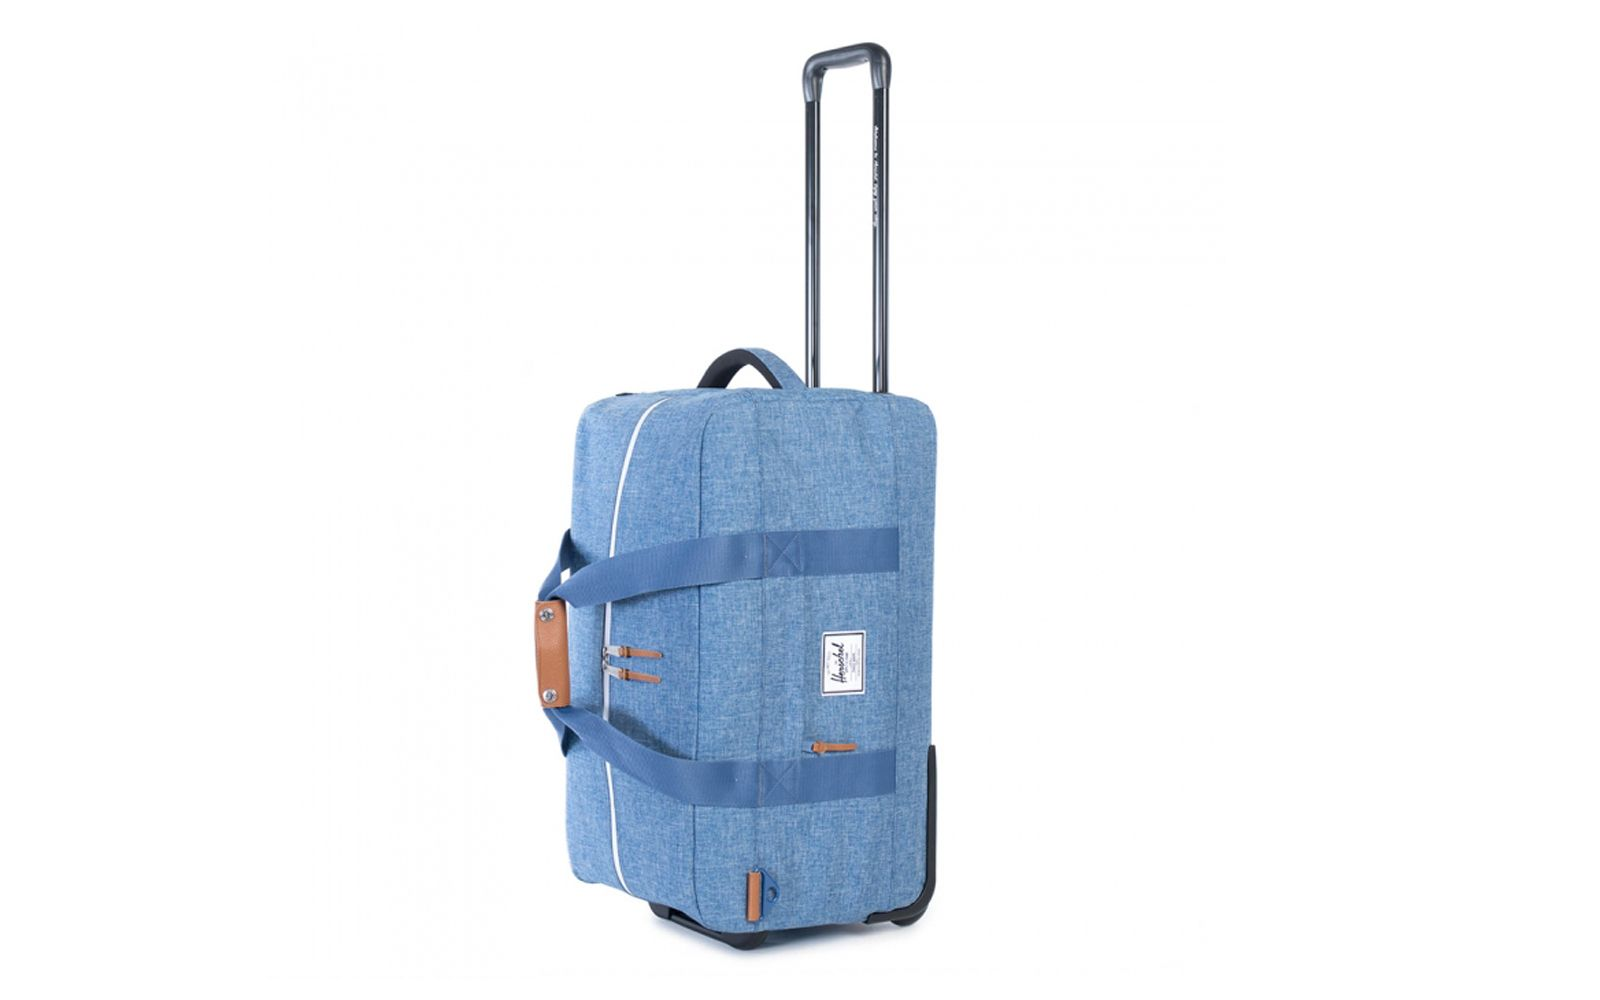 389807d41d0 Herschel Supply Co. Berto Rolling Duffel   stuff i want to buy   Pinterest    Rolling backpack, Travel bags and Bags